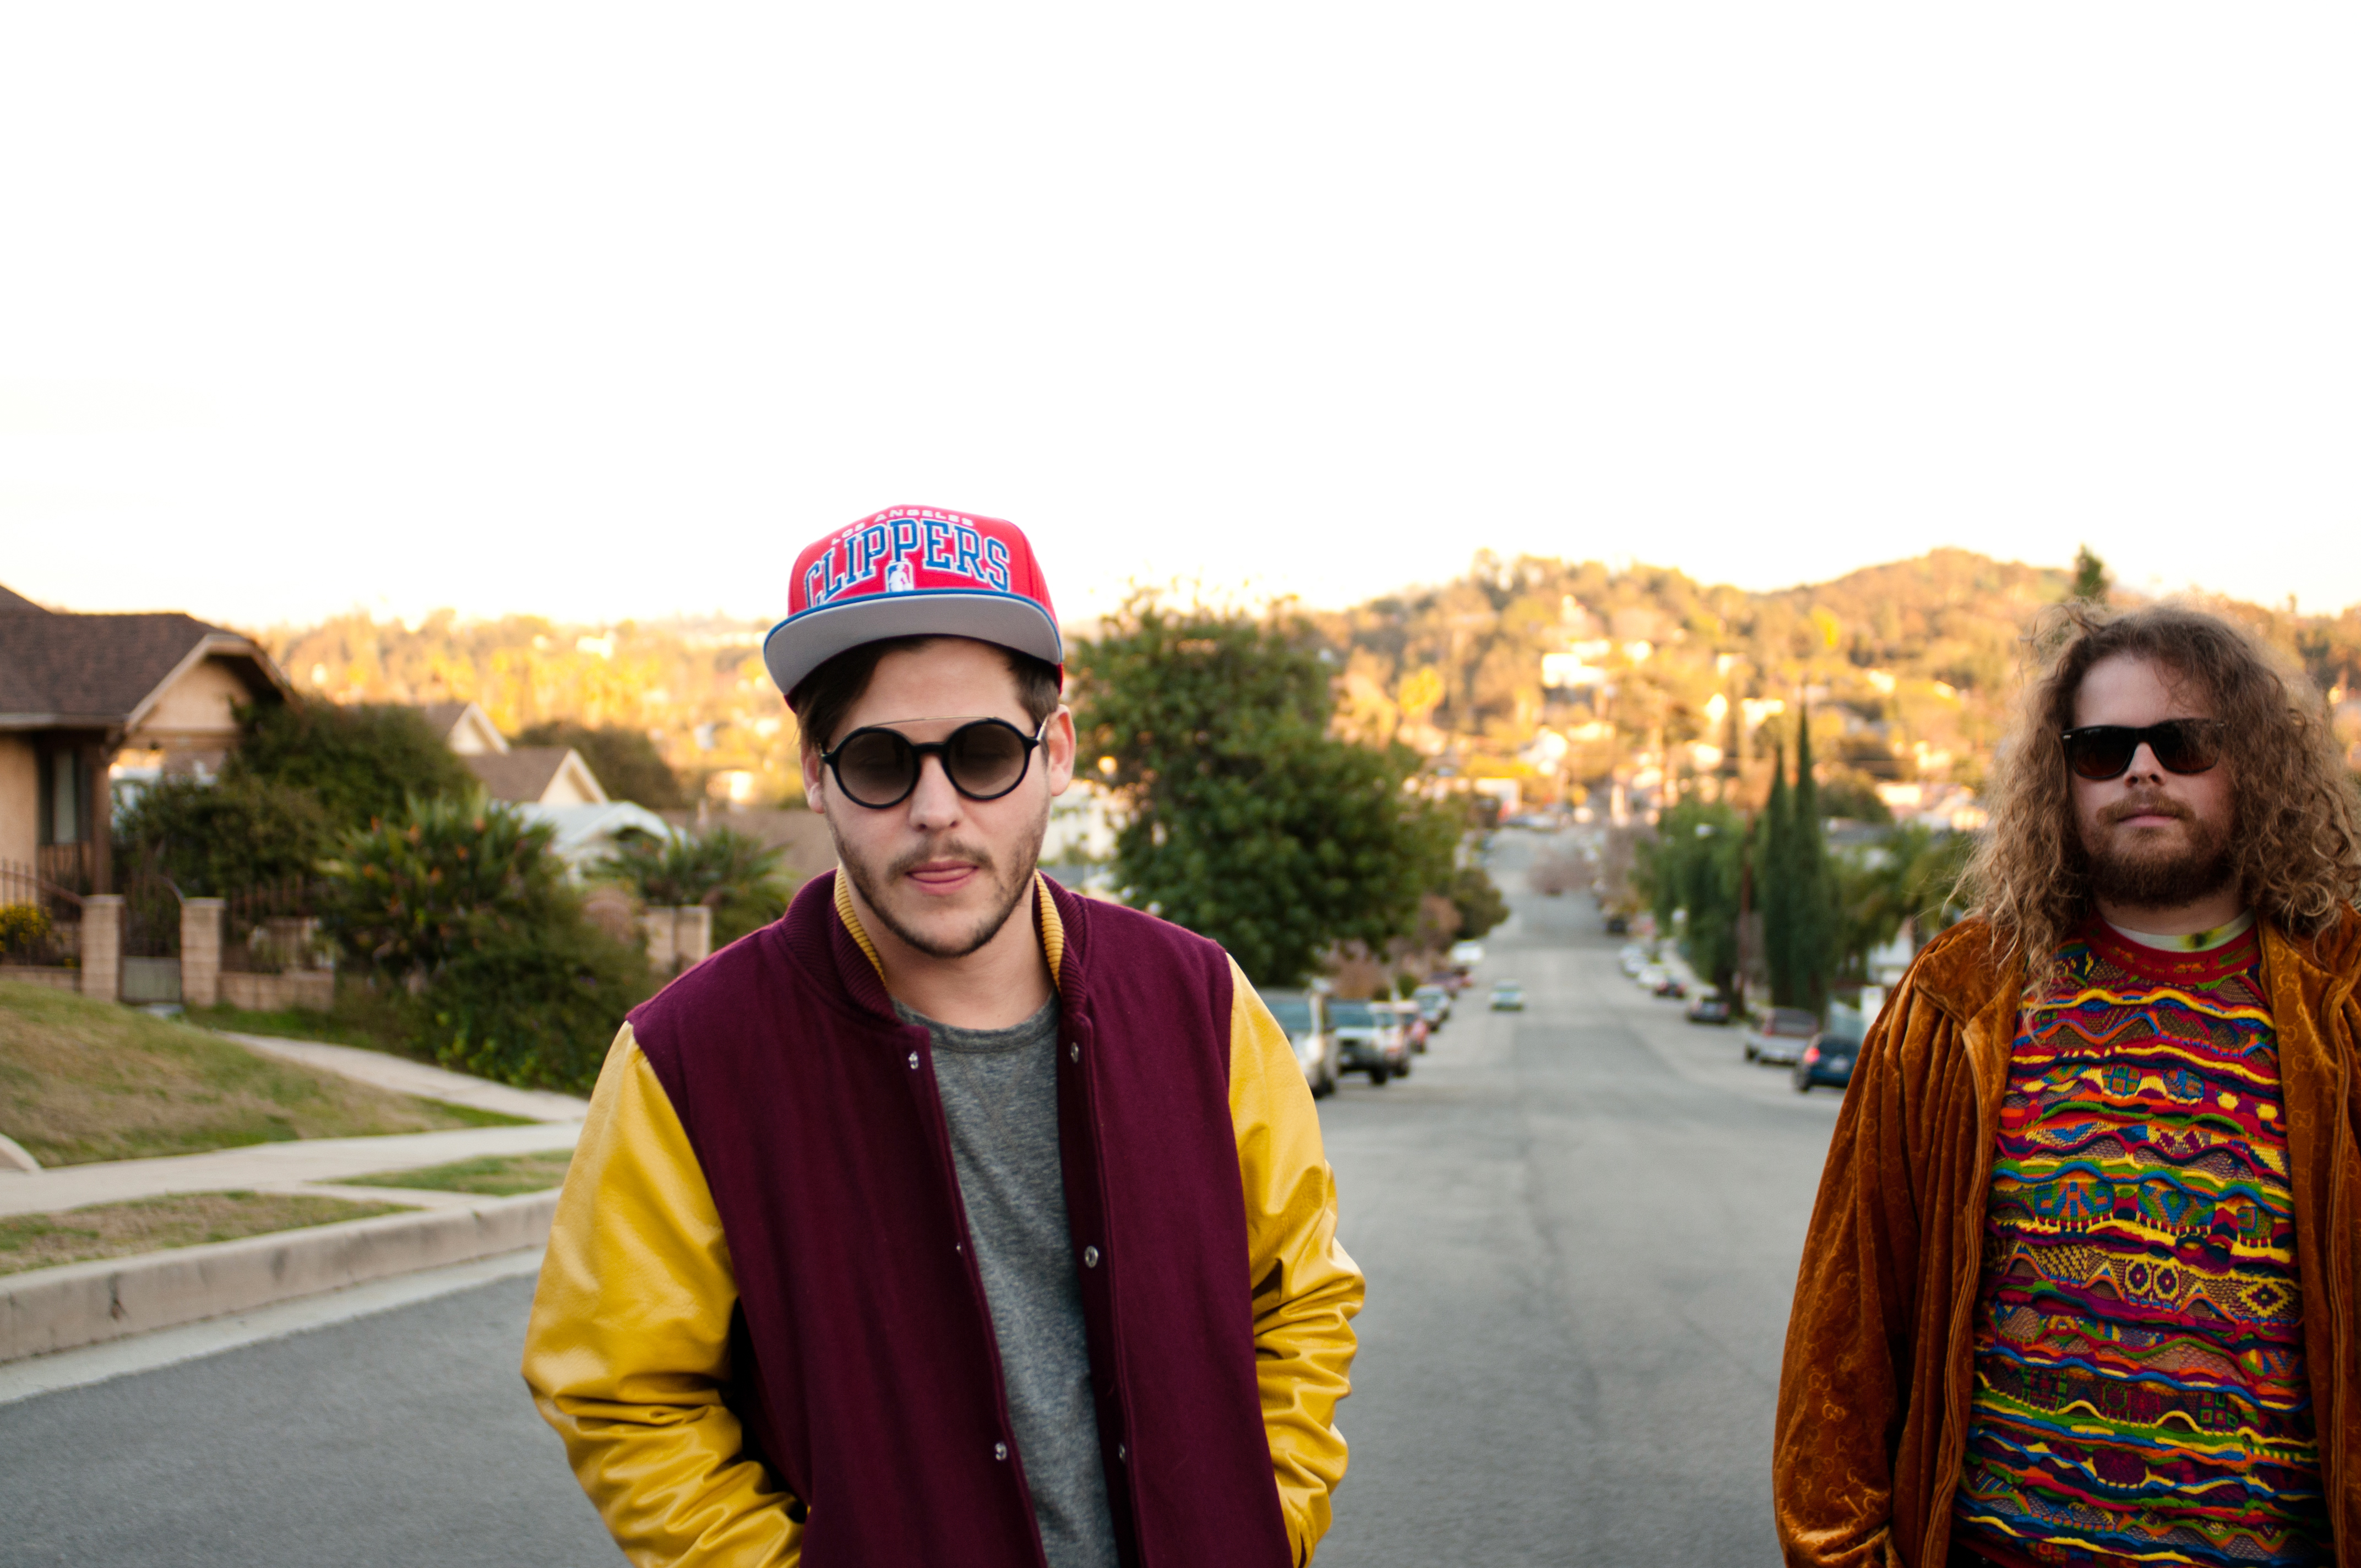 Our interview with Wavves frontman Nathan Williams. The band's new album 'V', comes out on October 2nd on Warner.